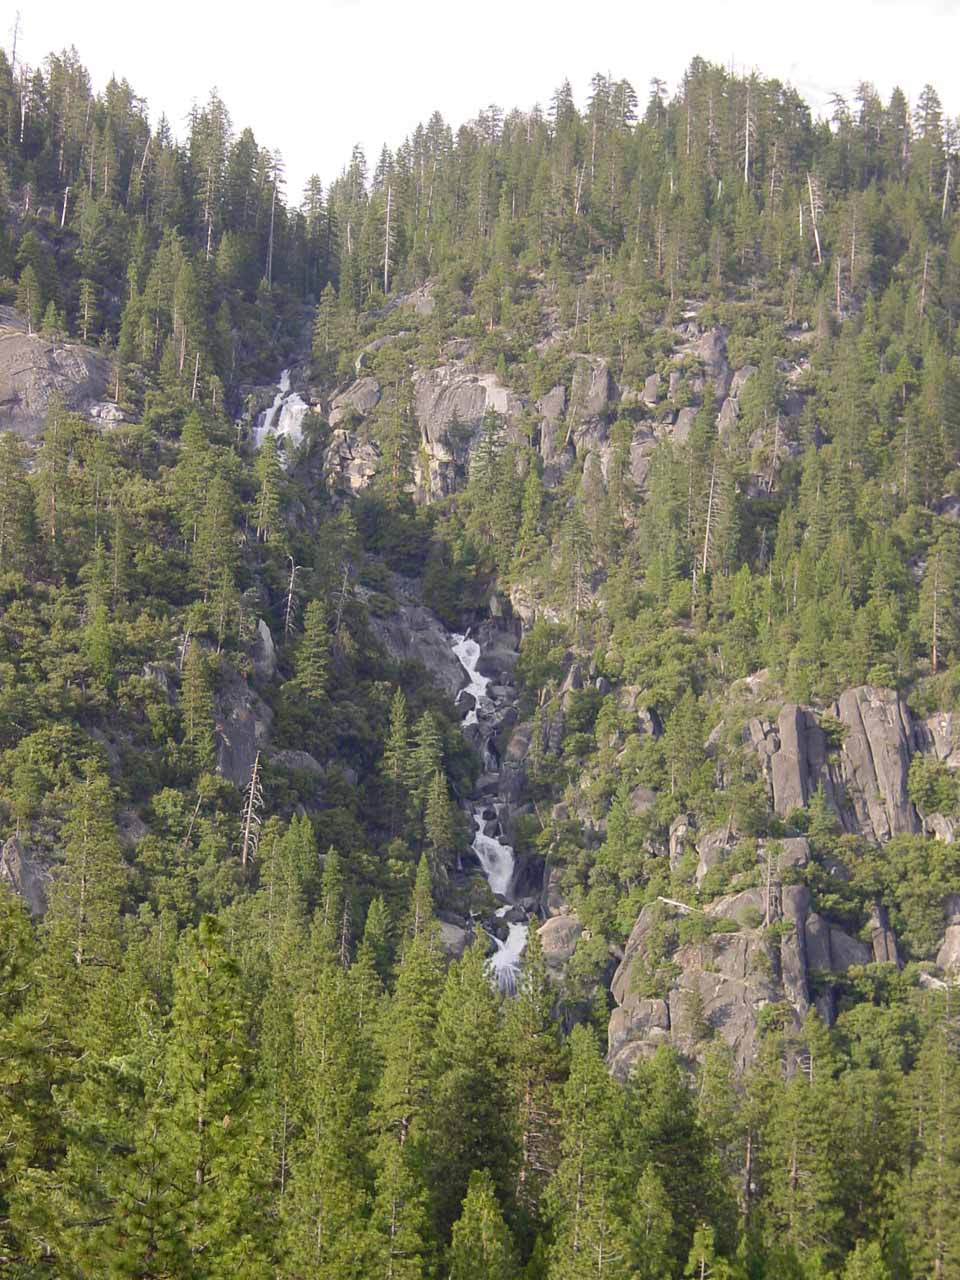 Looking up at the Cascades from the bridge